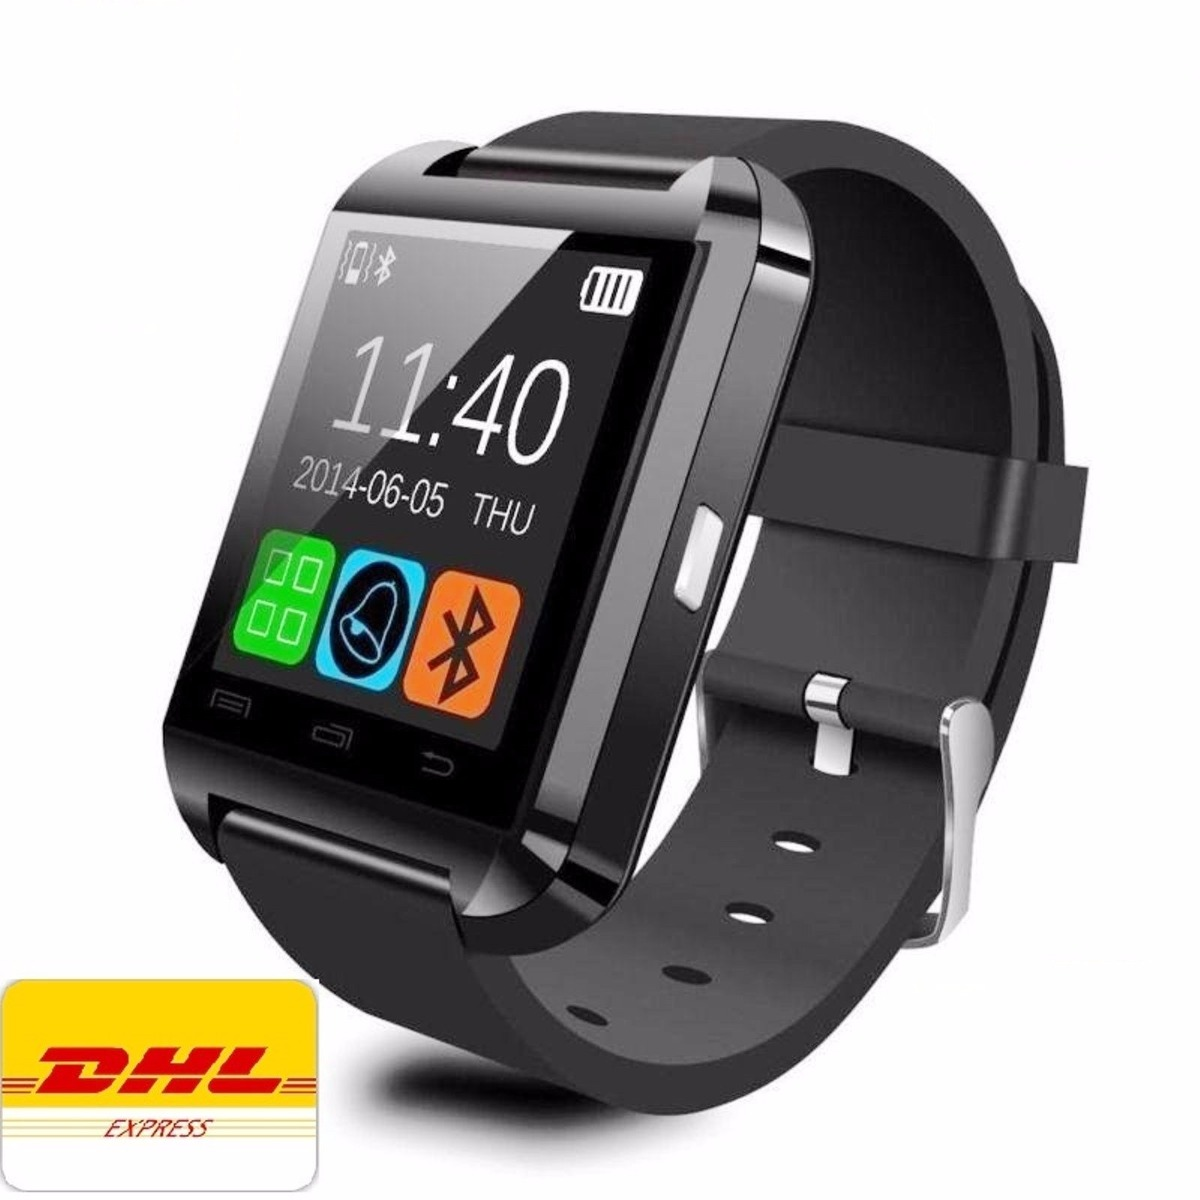 smartwatch compatible with iphone reloj smartwatch u8 bluetooth smartphones android amp iphone 2572